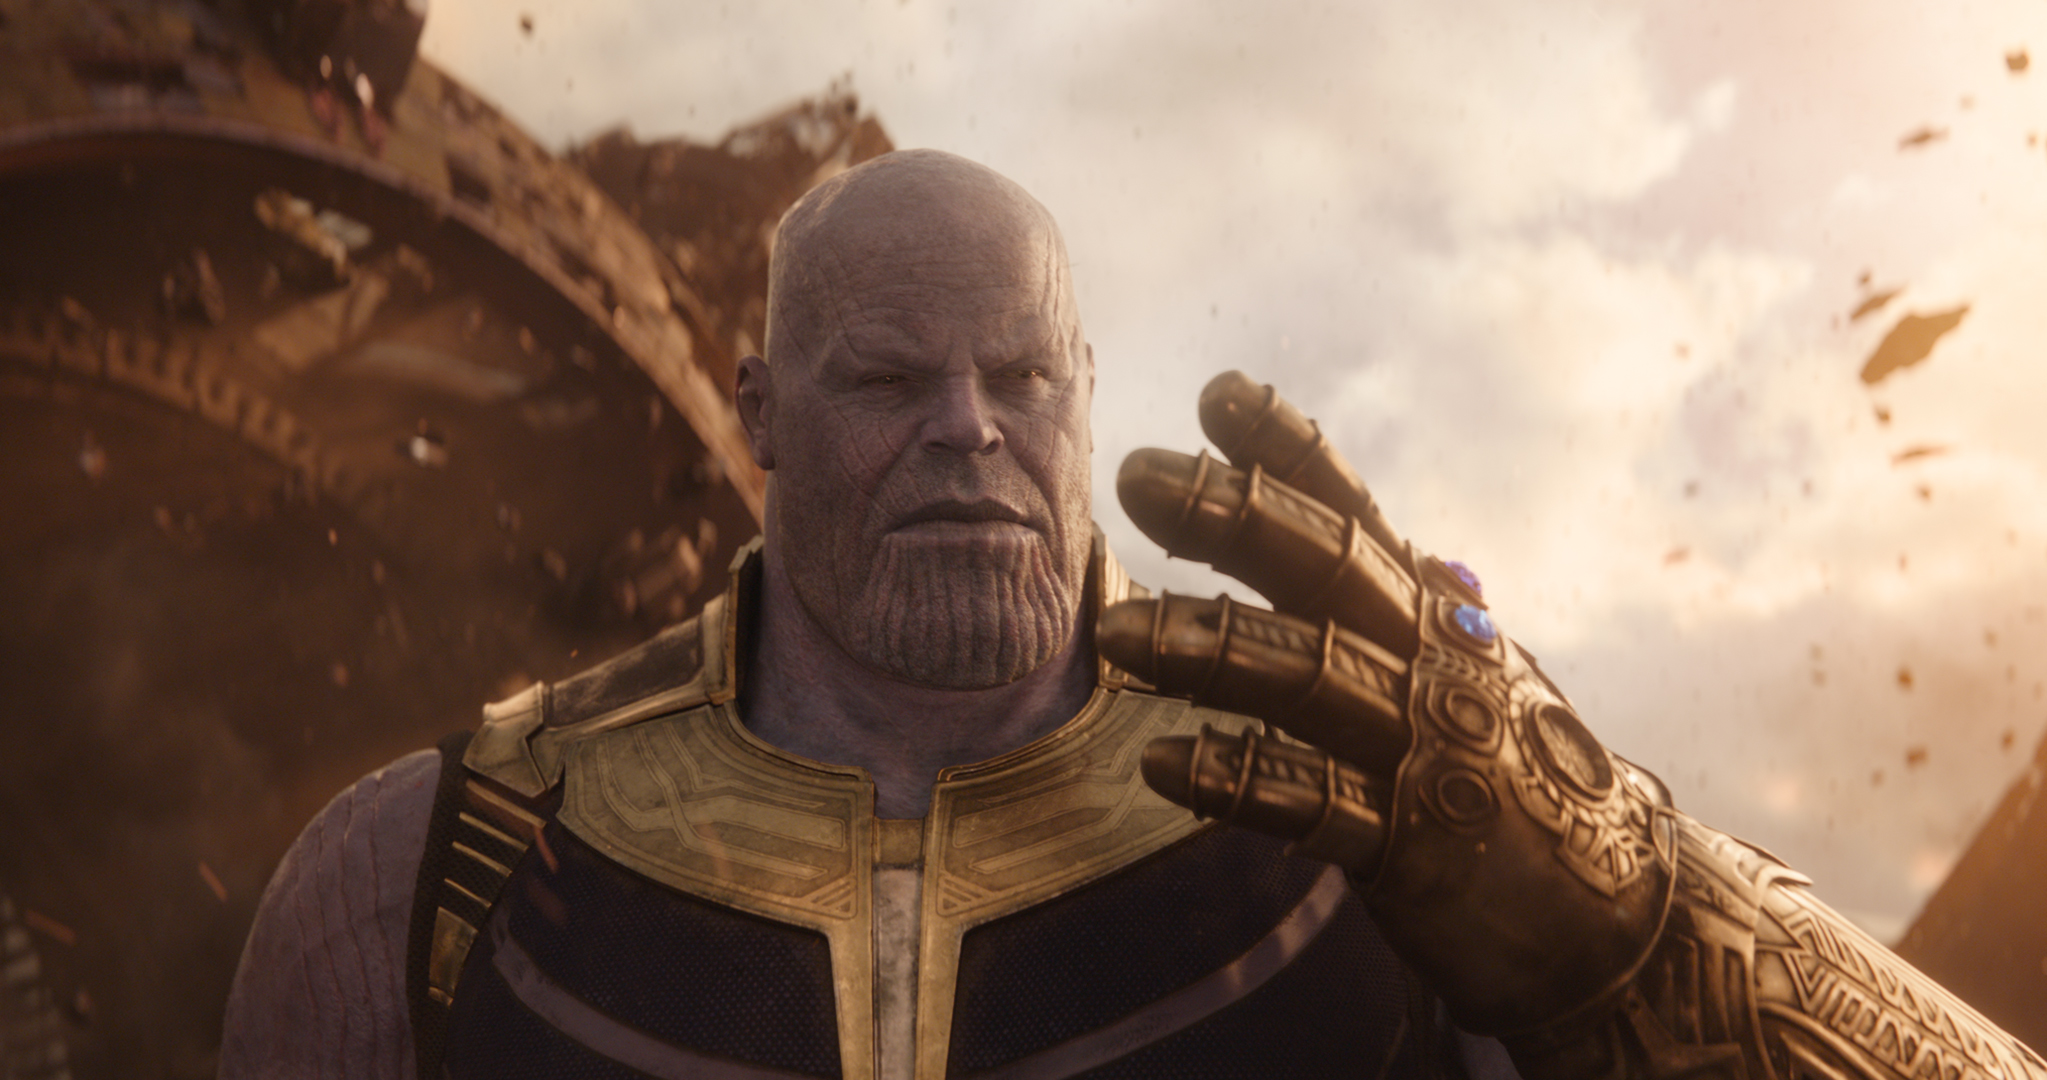 How to make your own Thanos gauntlet from Avengers: Infinity